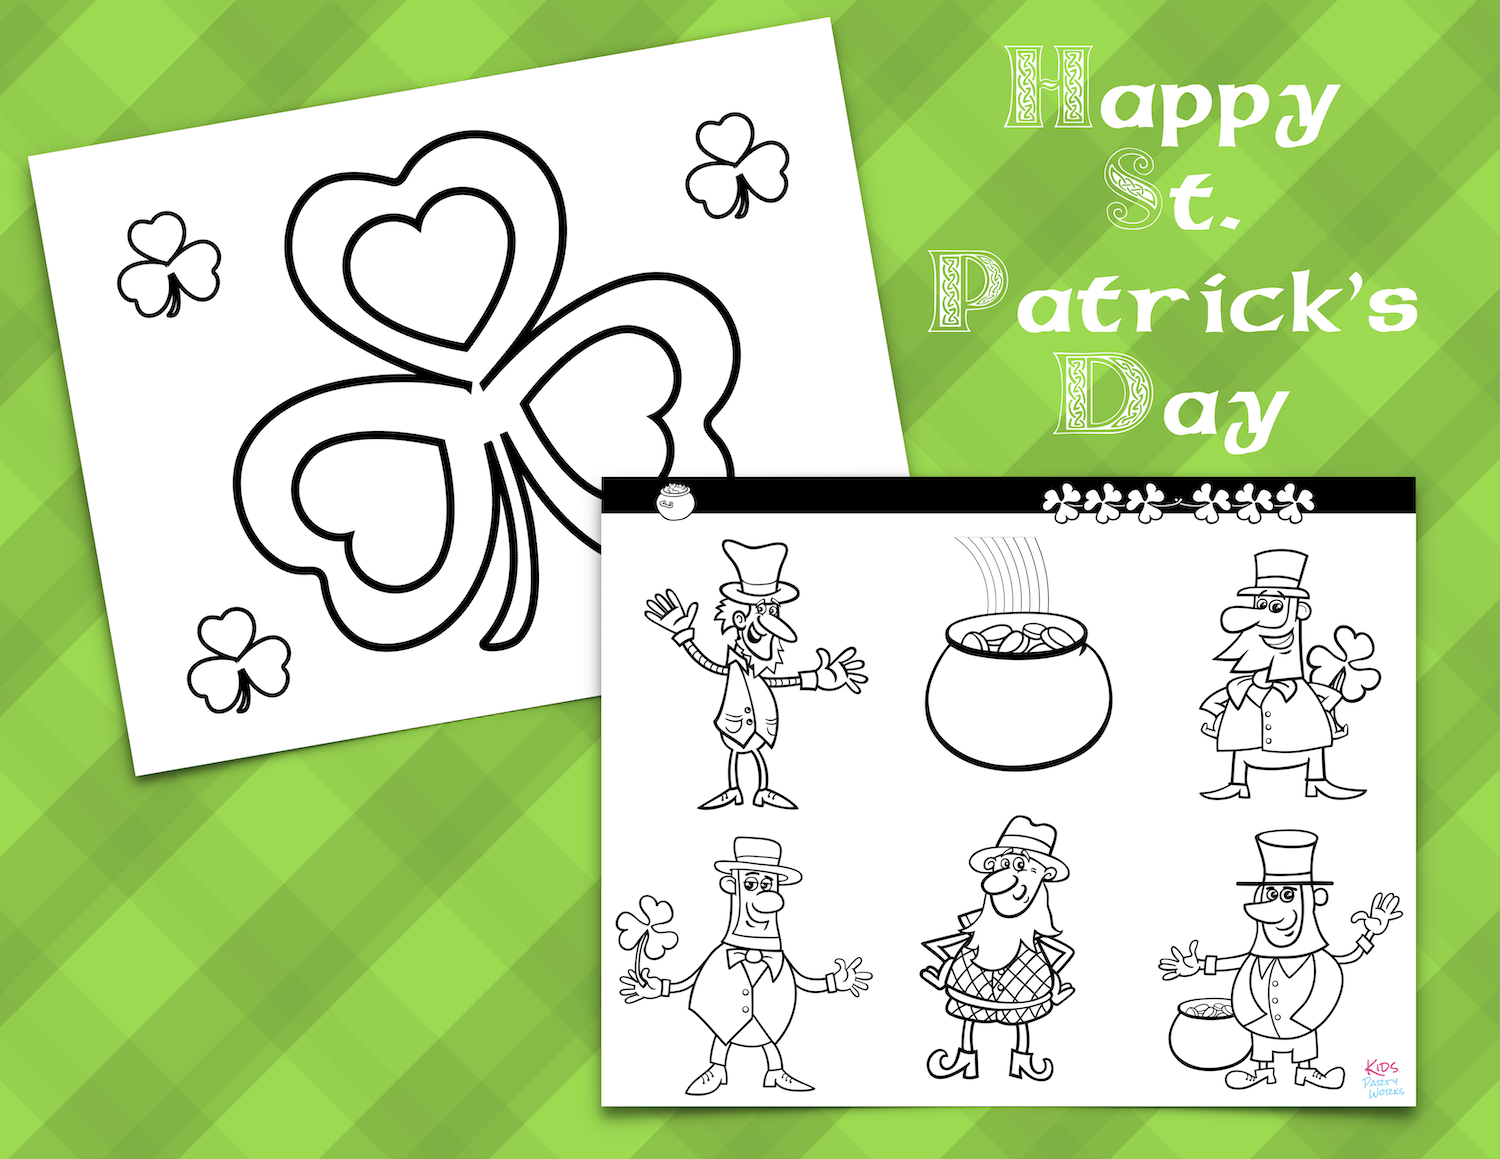 St. Patrick's Day Coloring Pages at KidsPartyWorks.Com